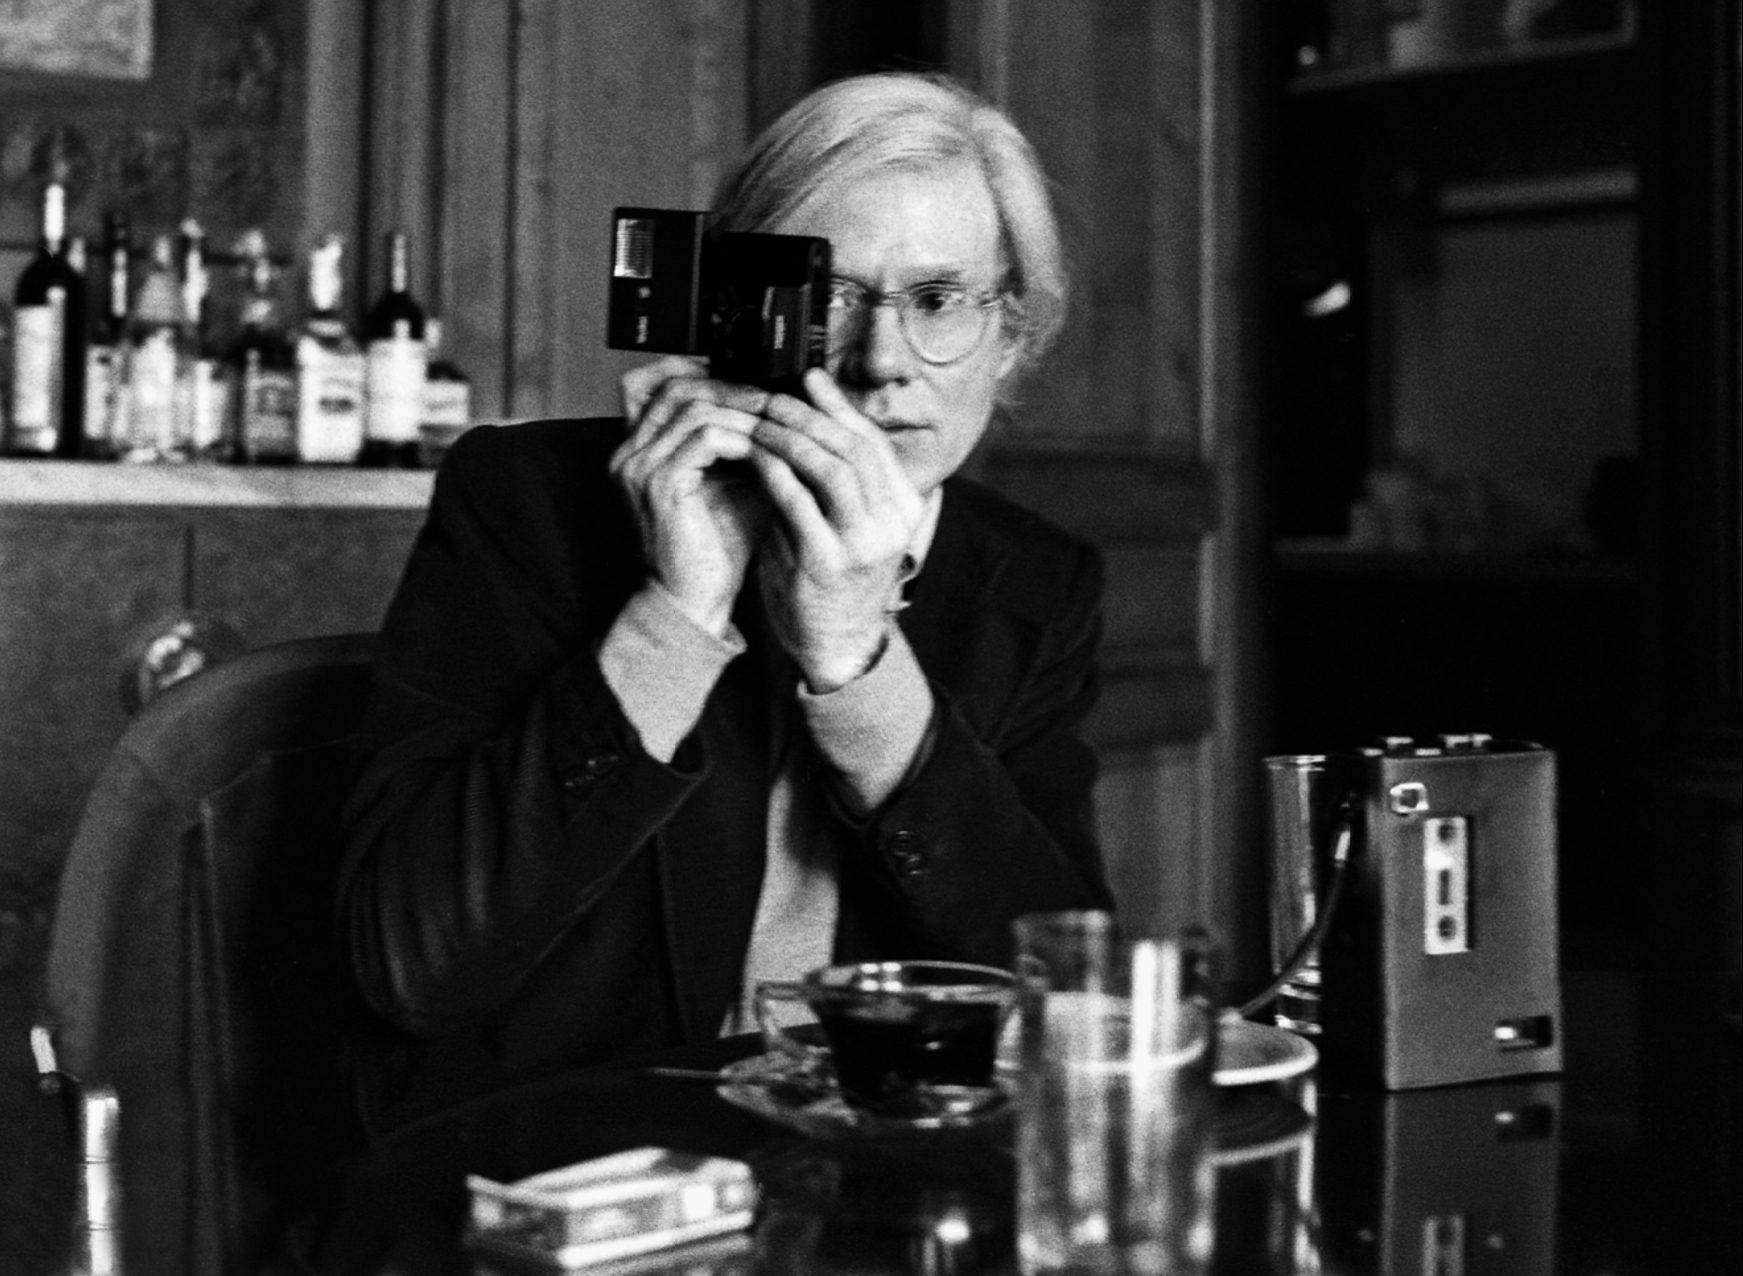 Andy Warhol with camera at The Factory, NYC